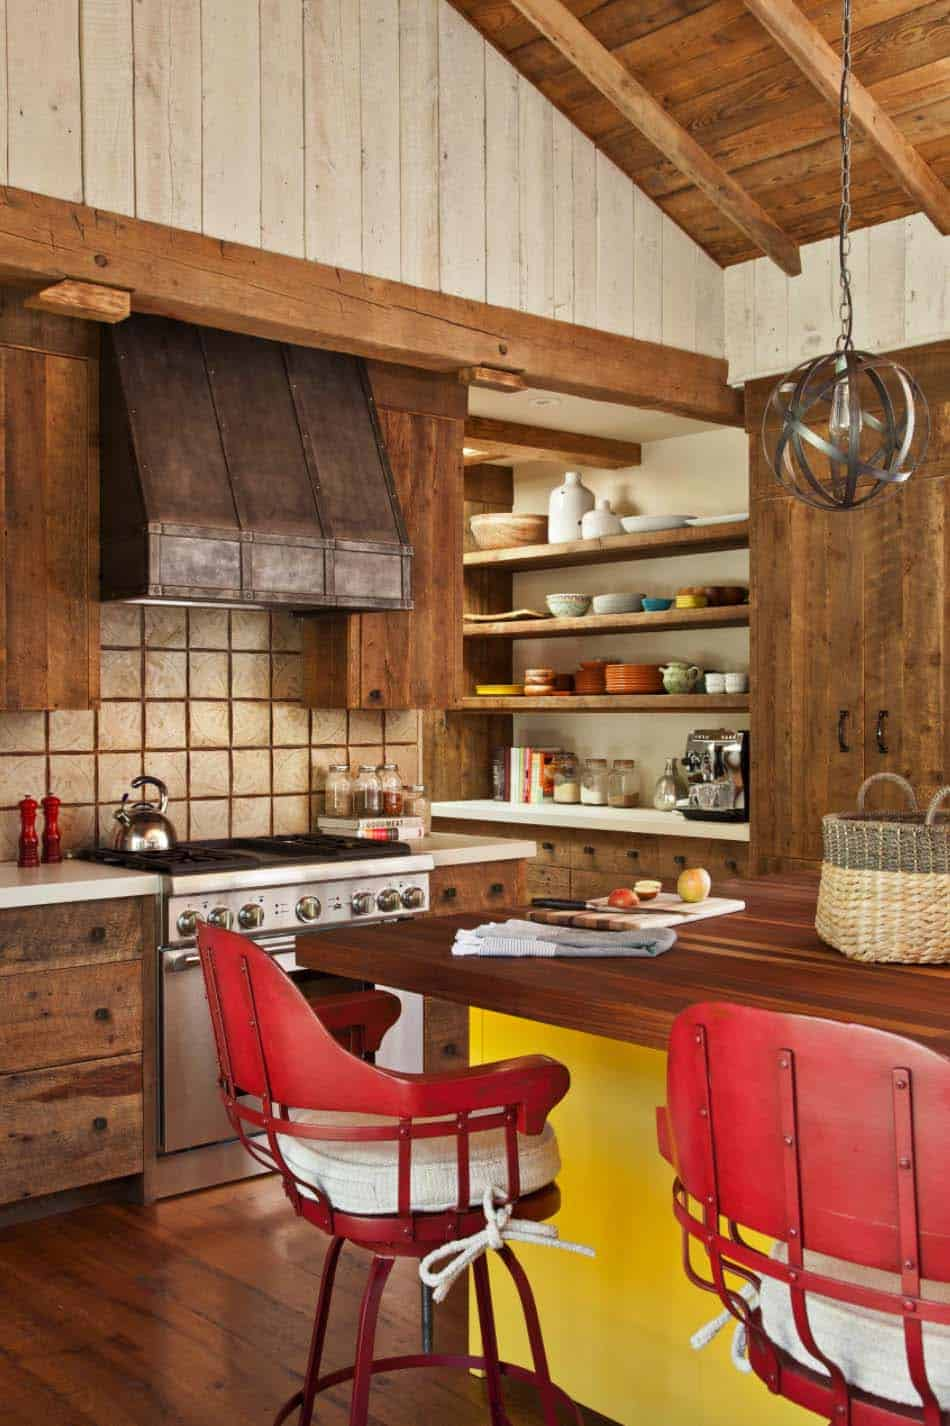 Rustic Mountain Retreat-Miller Roodell Architects-08-1 Kindesign